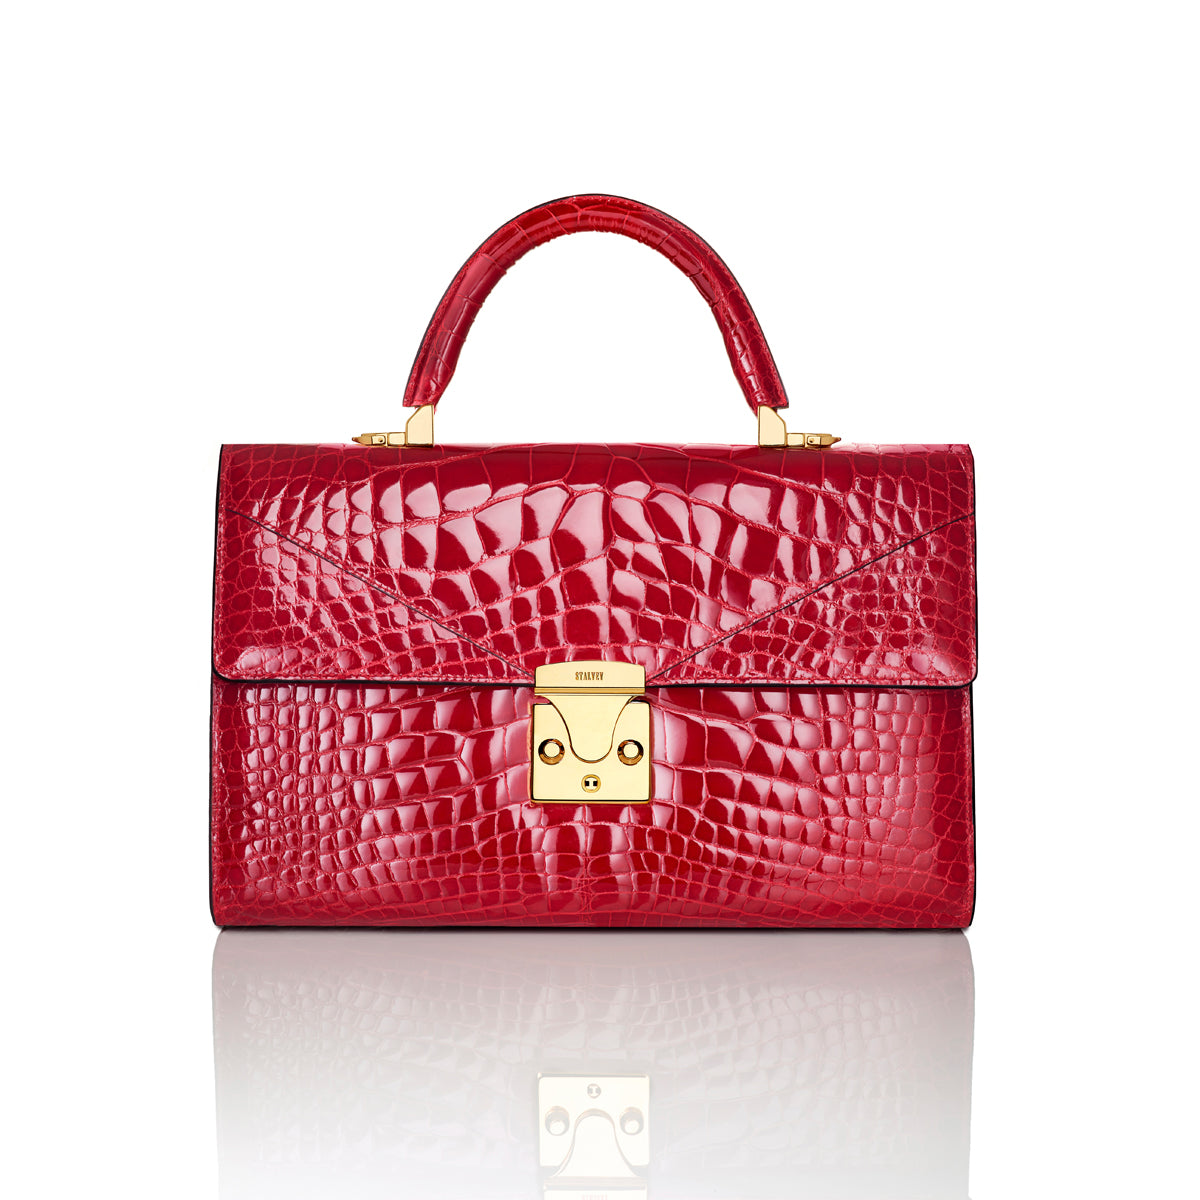 Top Handle 3.0 Medium - Cerise Alligator